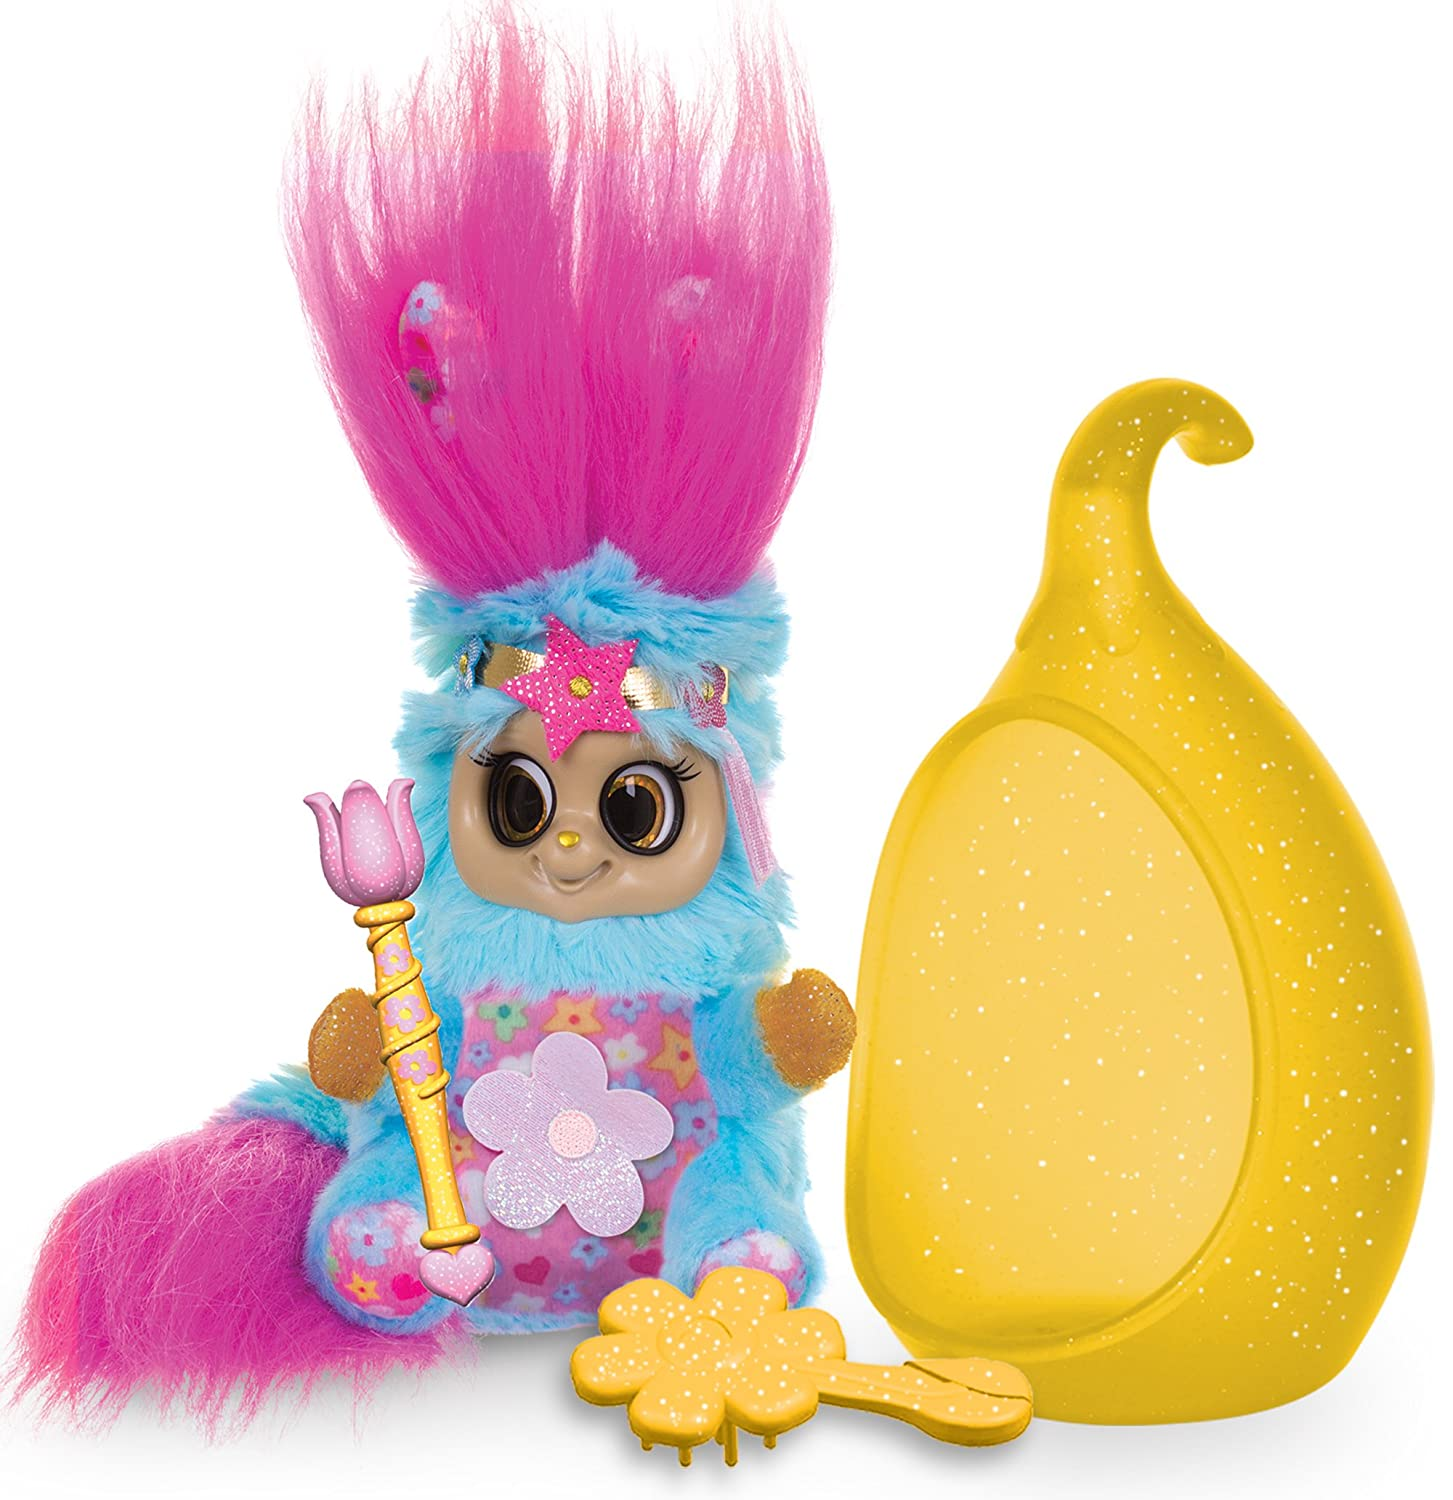 Bush Baby World Princess Blossom Soft Toy 2346